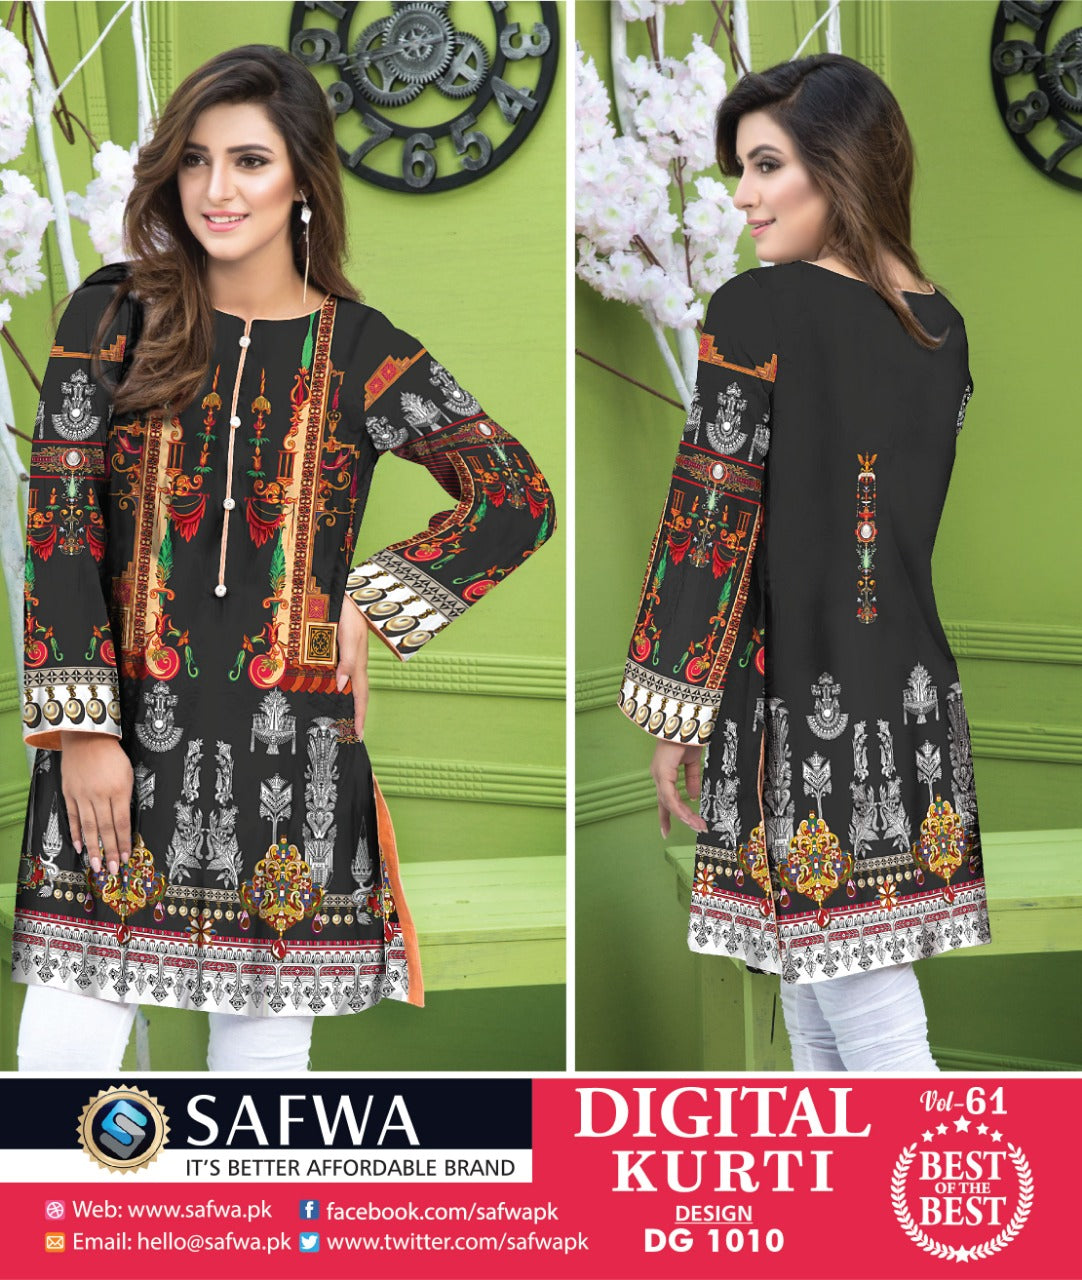 DG1010 - SAFWA DIGITAL COTTON PRINT KURTI COLLECTION -SHIRT KURTI KAMEEZ-Shirt-Kurti-SAFWA -SAFWA Brand Pakistan online shopping for Designer DressesSAFWA DRESS DESIGN, DRESSES, PAKISTANI DRESSES